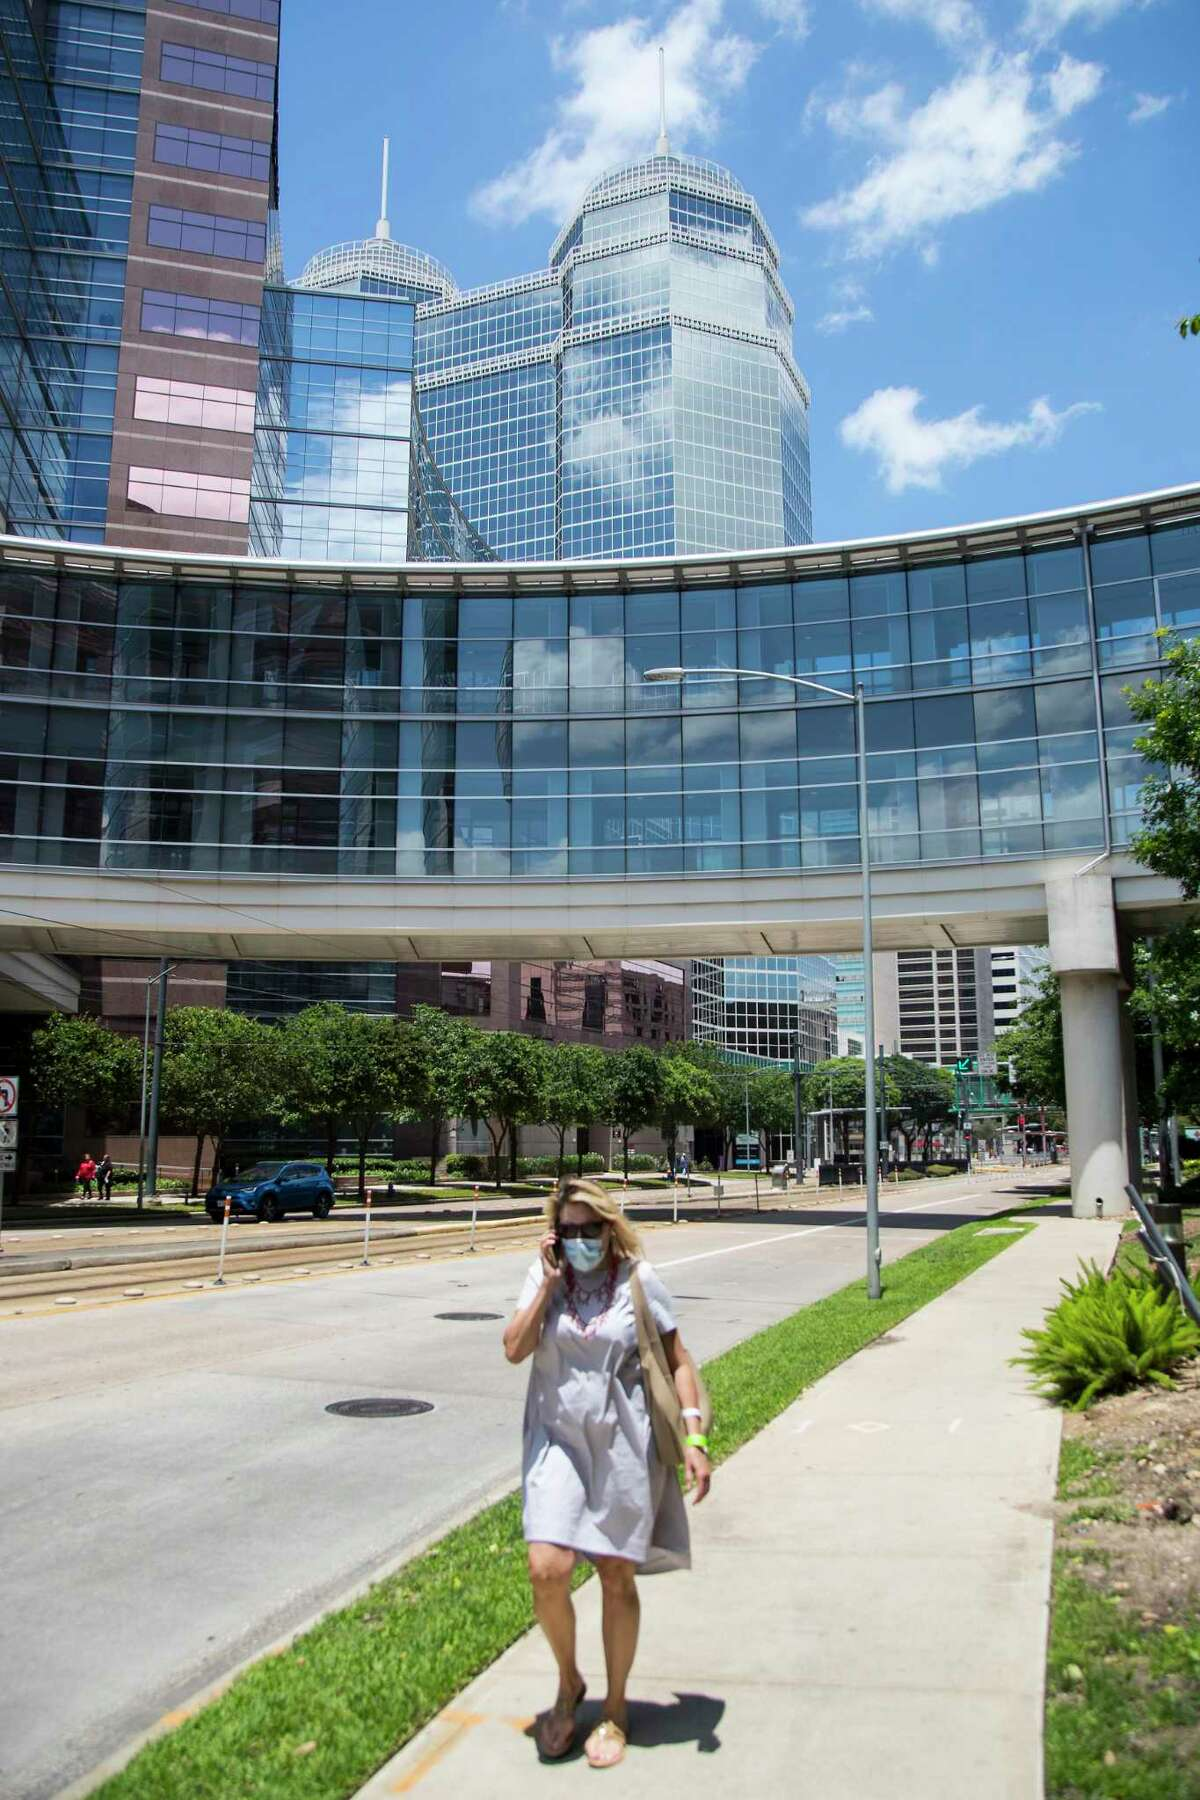 """People move about the Texas Medical Center on Tuesday, May 19, 2020 in Houston. Texas Medical Center leaders Tuesday defended the latest stage of Gov. Greg Abbott's reopening of the economy, arguing that though they disagree with some of the calls, it's a reasonably cautious approach given the tightrope he needs to walk. The leaders, who supported Harris County Judge Lina Hidalgo's more hard line attitude during the lockdown, said Tuesday they like Abbott's staged opening and pause to look at data. Some academics took a different view, however. Rice University health economist Vivian Ho called Abbott's moves too fast and said """"it's a disaster in the making."""""""